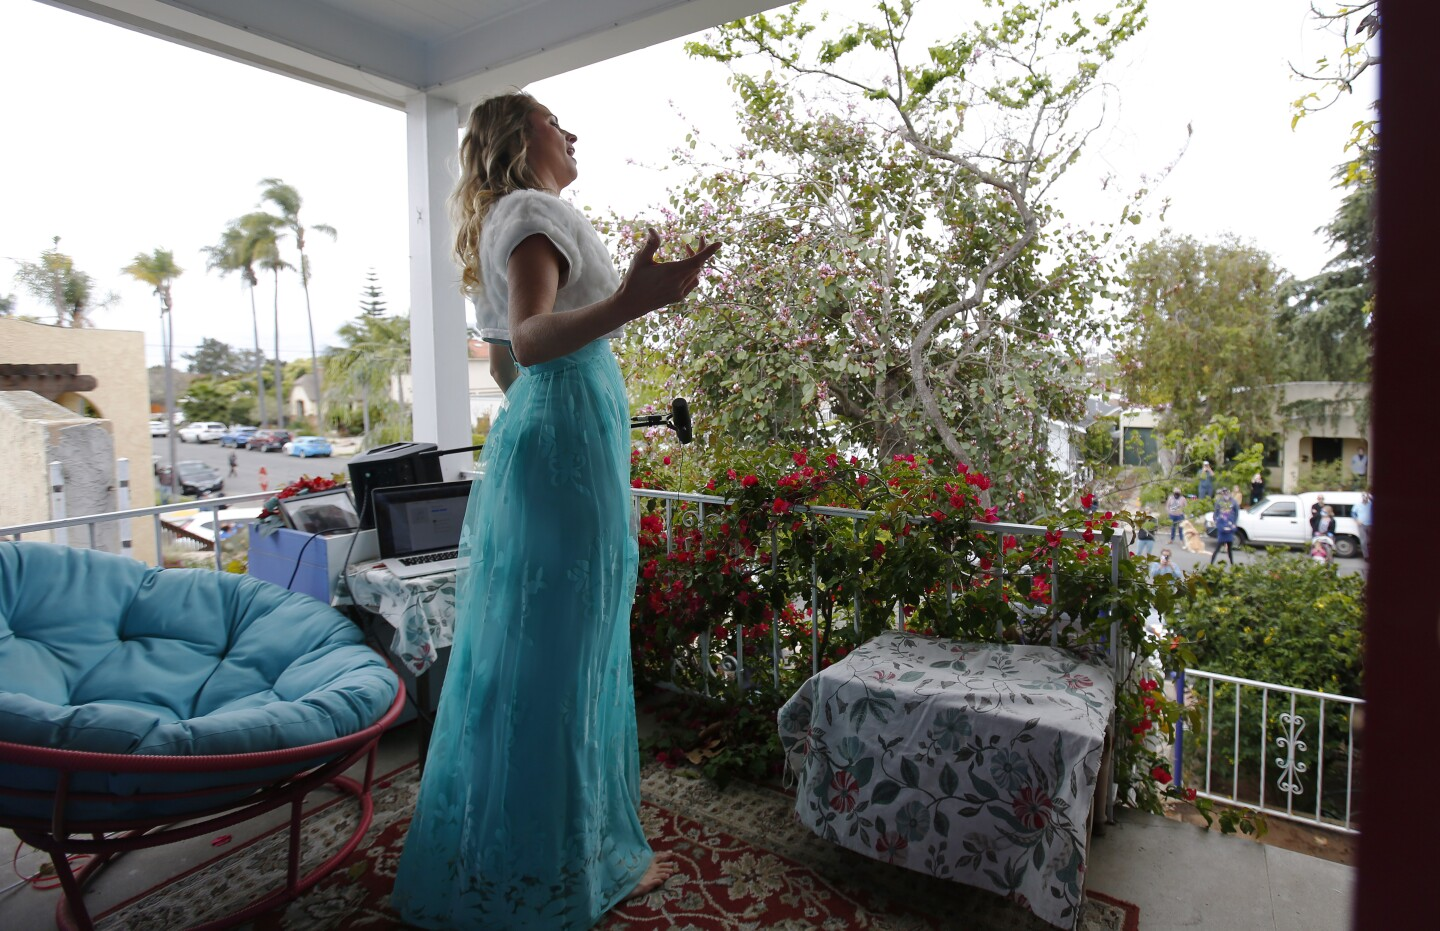 Opera singer Victoria Robertson, a soprano, sings from the porch of her North Park home on April 19, 2020. For the second week in a row, Robertson performed for 15 minutes to a crowd, who kept their distance from each other on the street below.